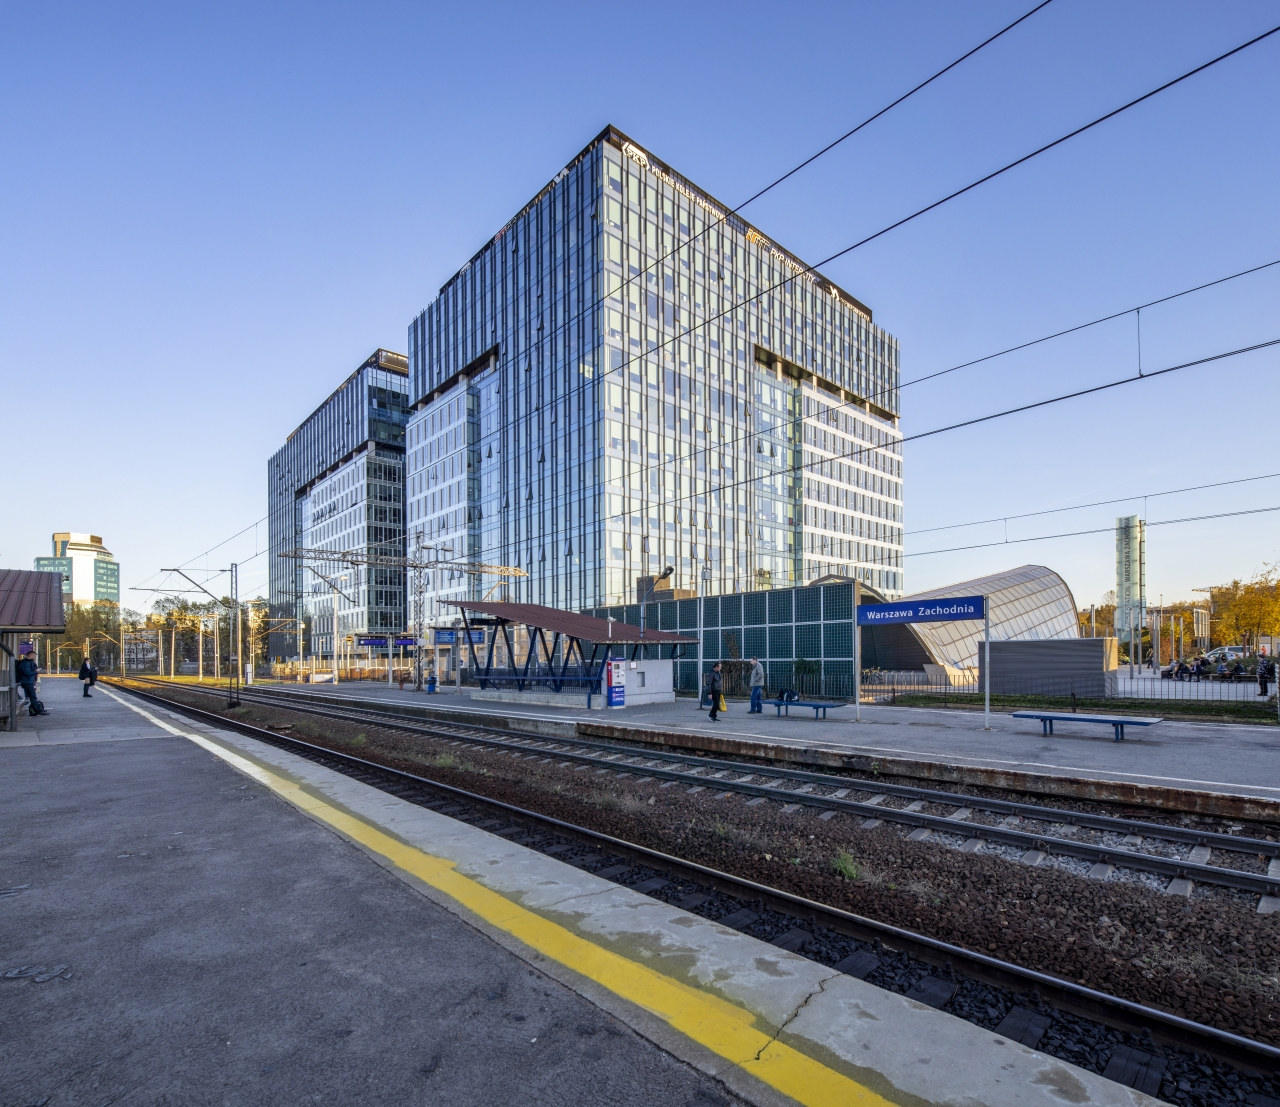 View of the buildings from Warsaw West Railway Station